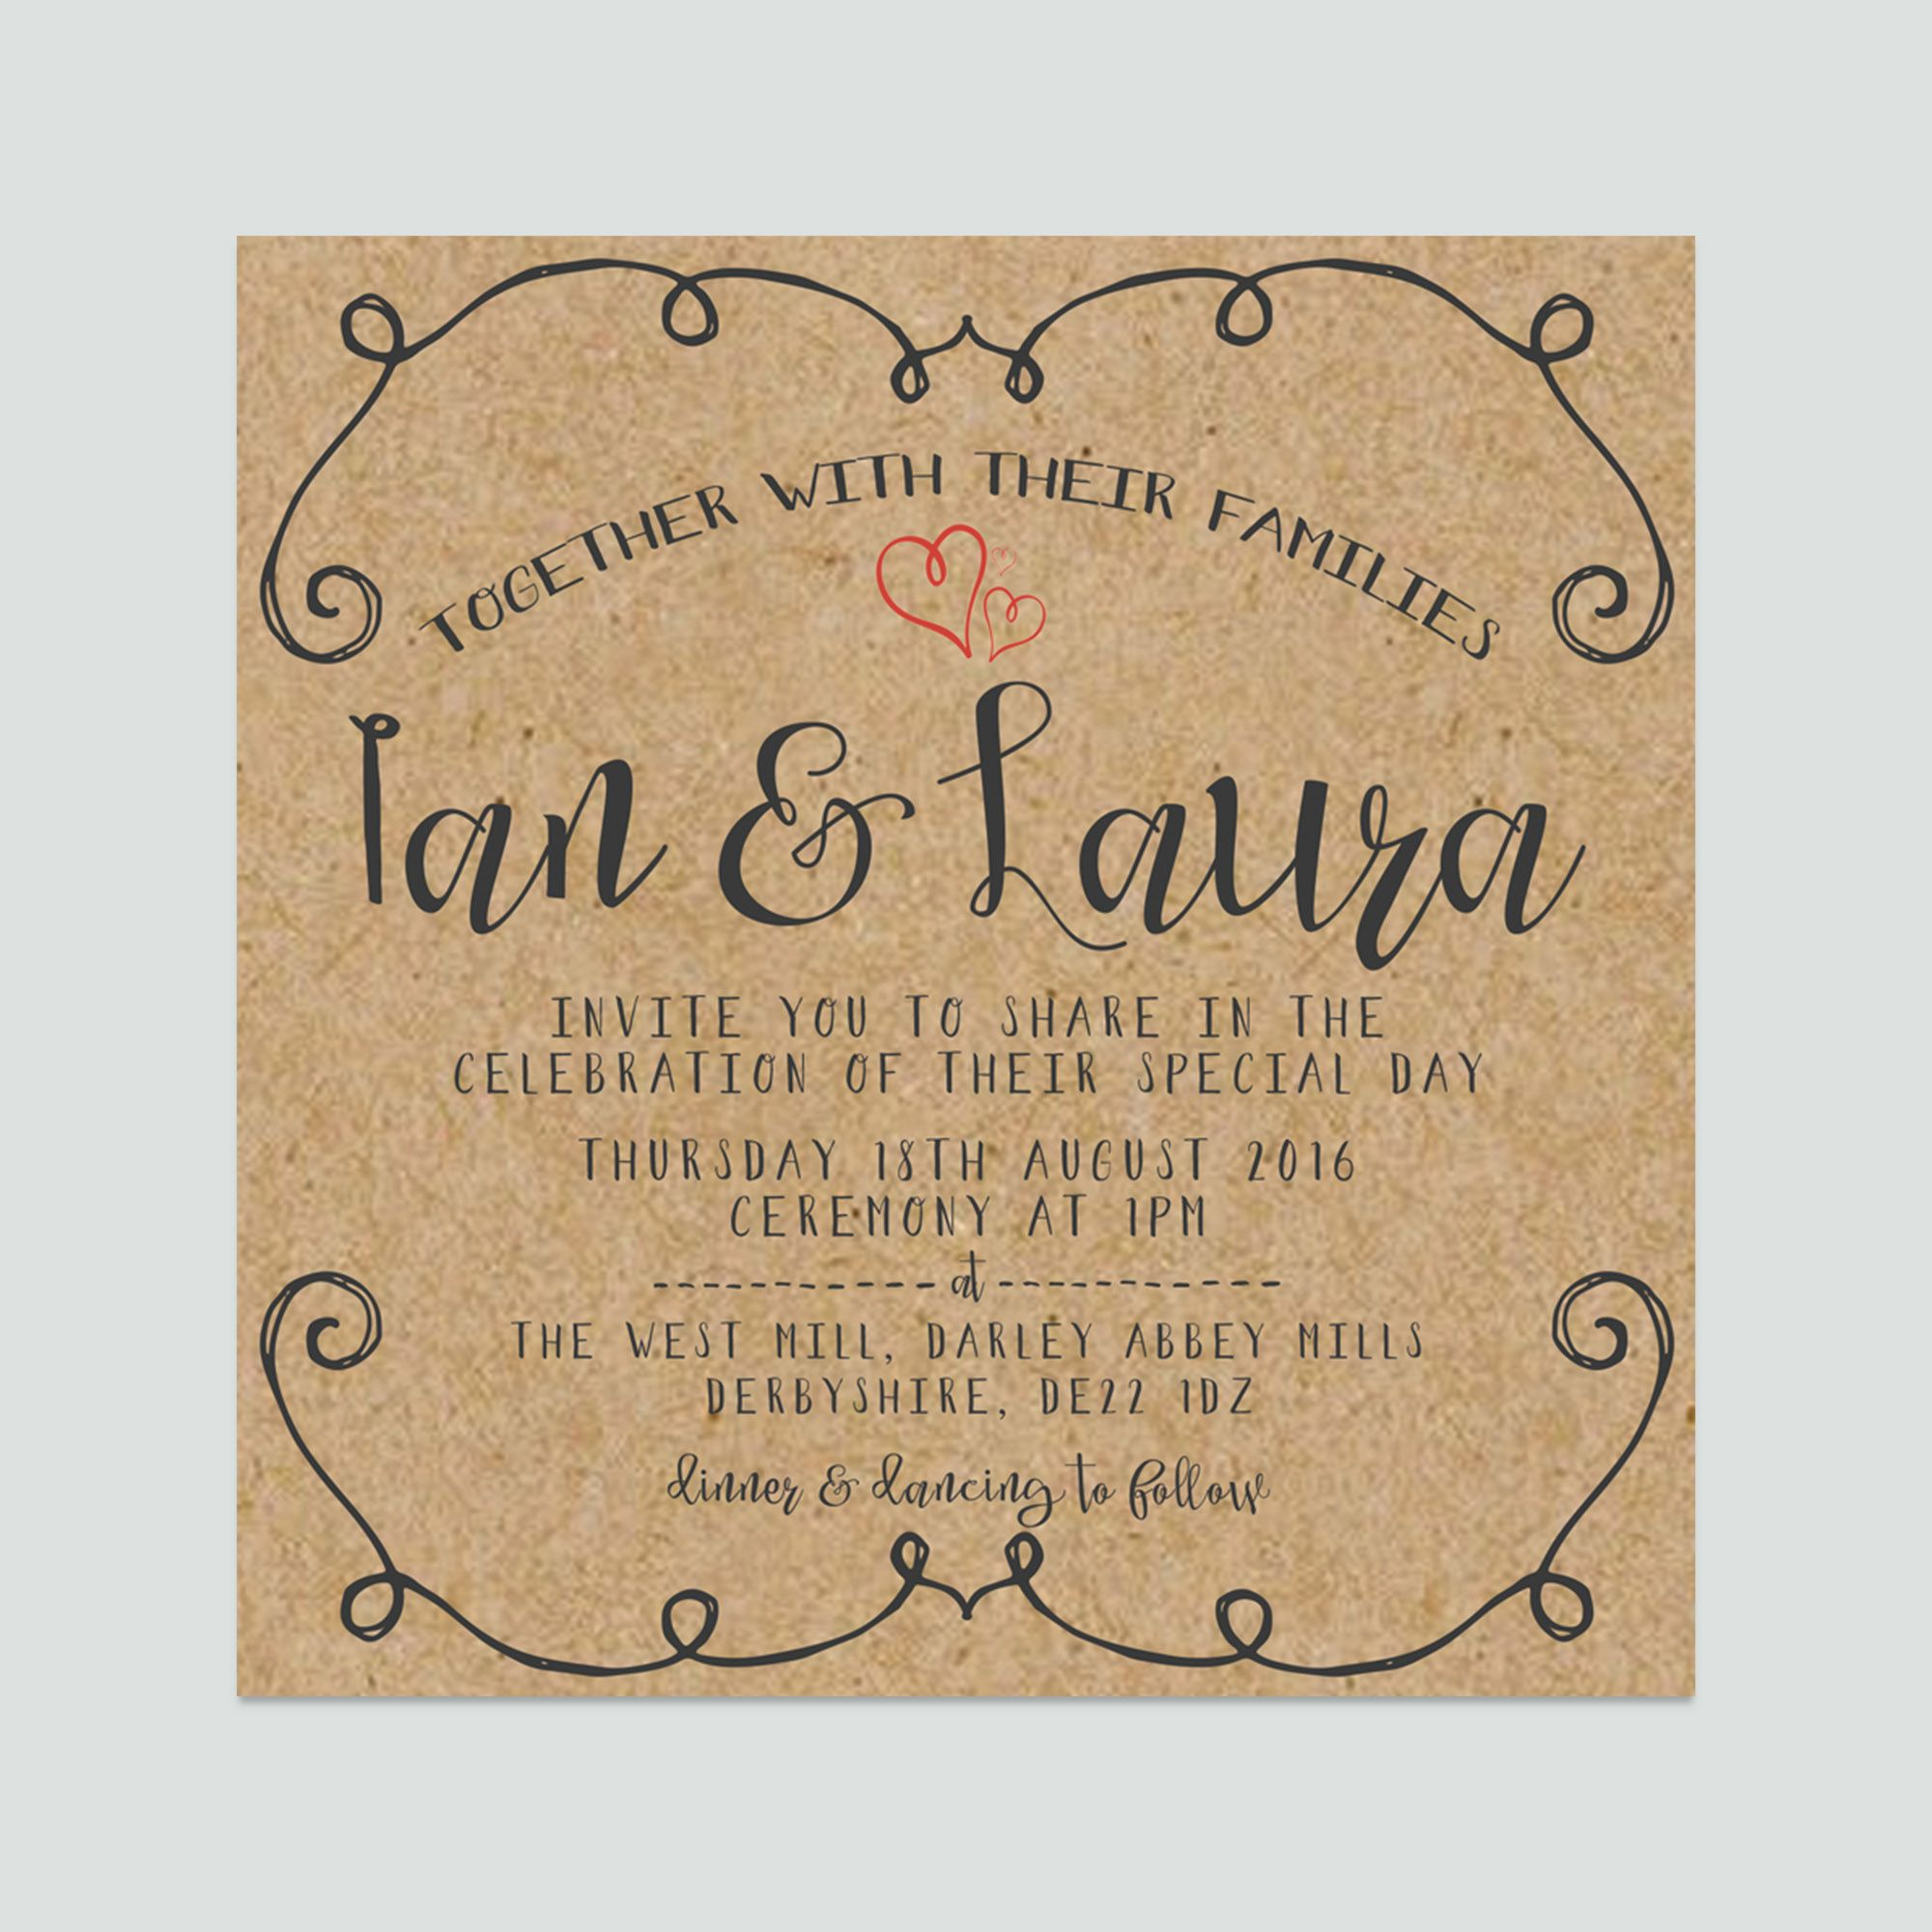 Square Rustic Decorative Border Heart Simple Wedding Invitation